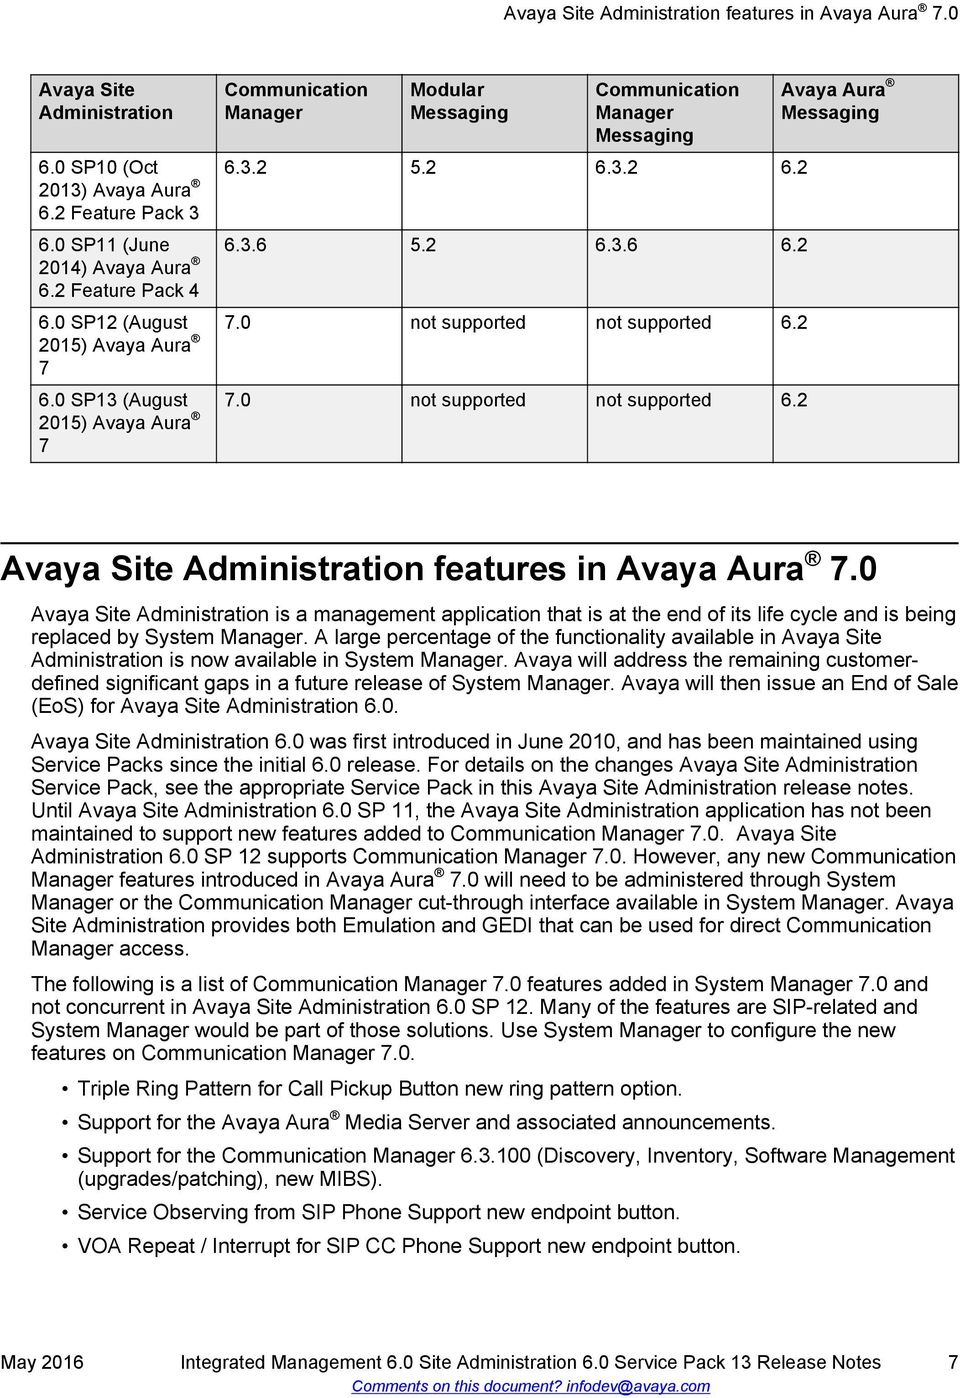 download avaya site administration windows 7